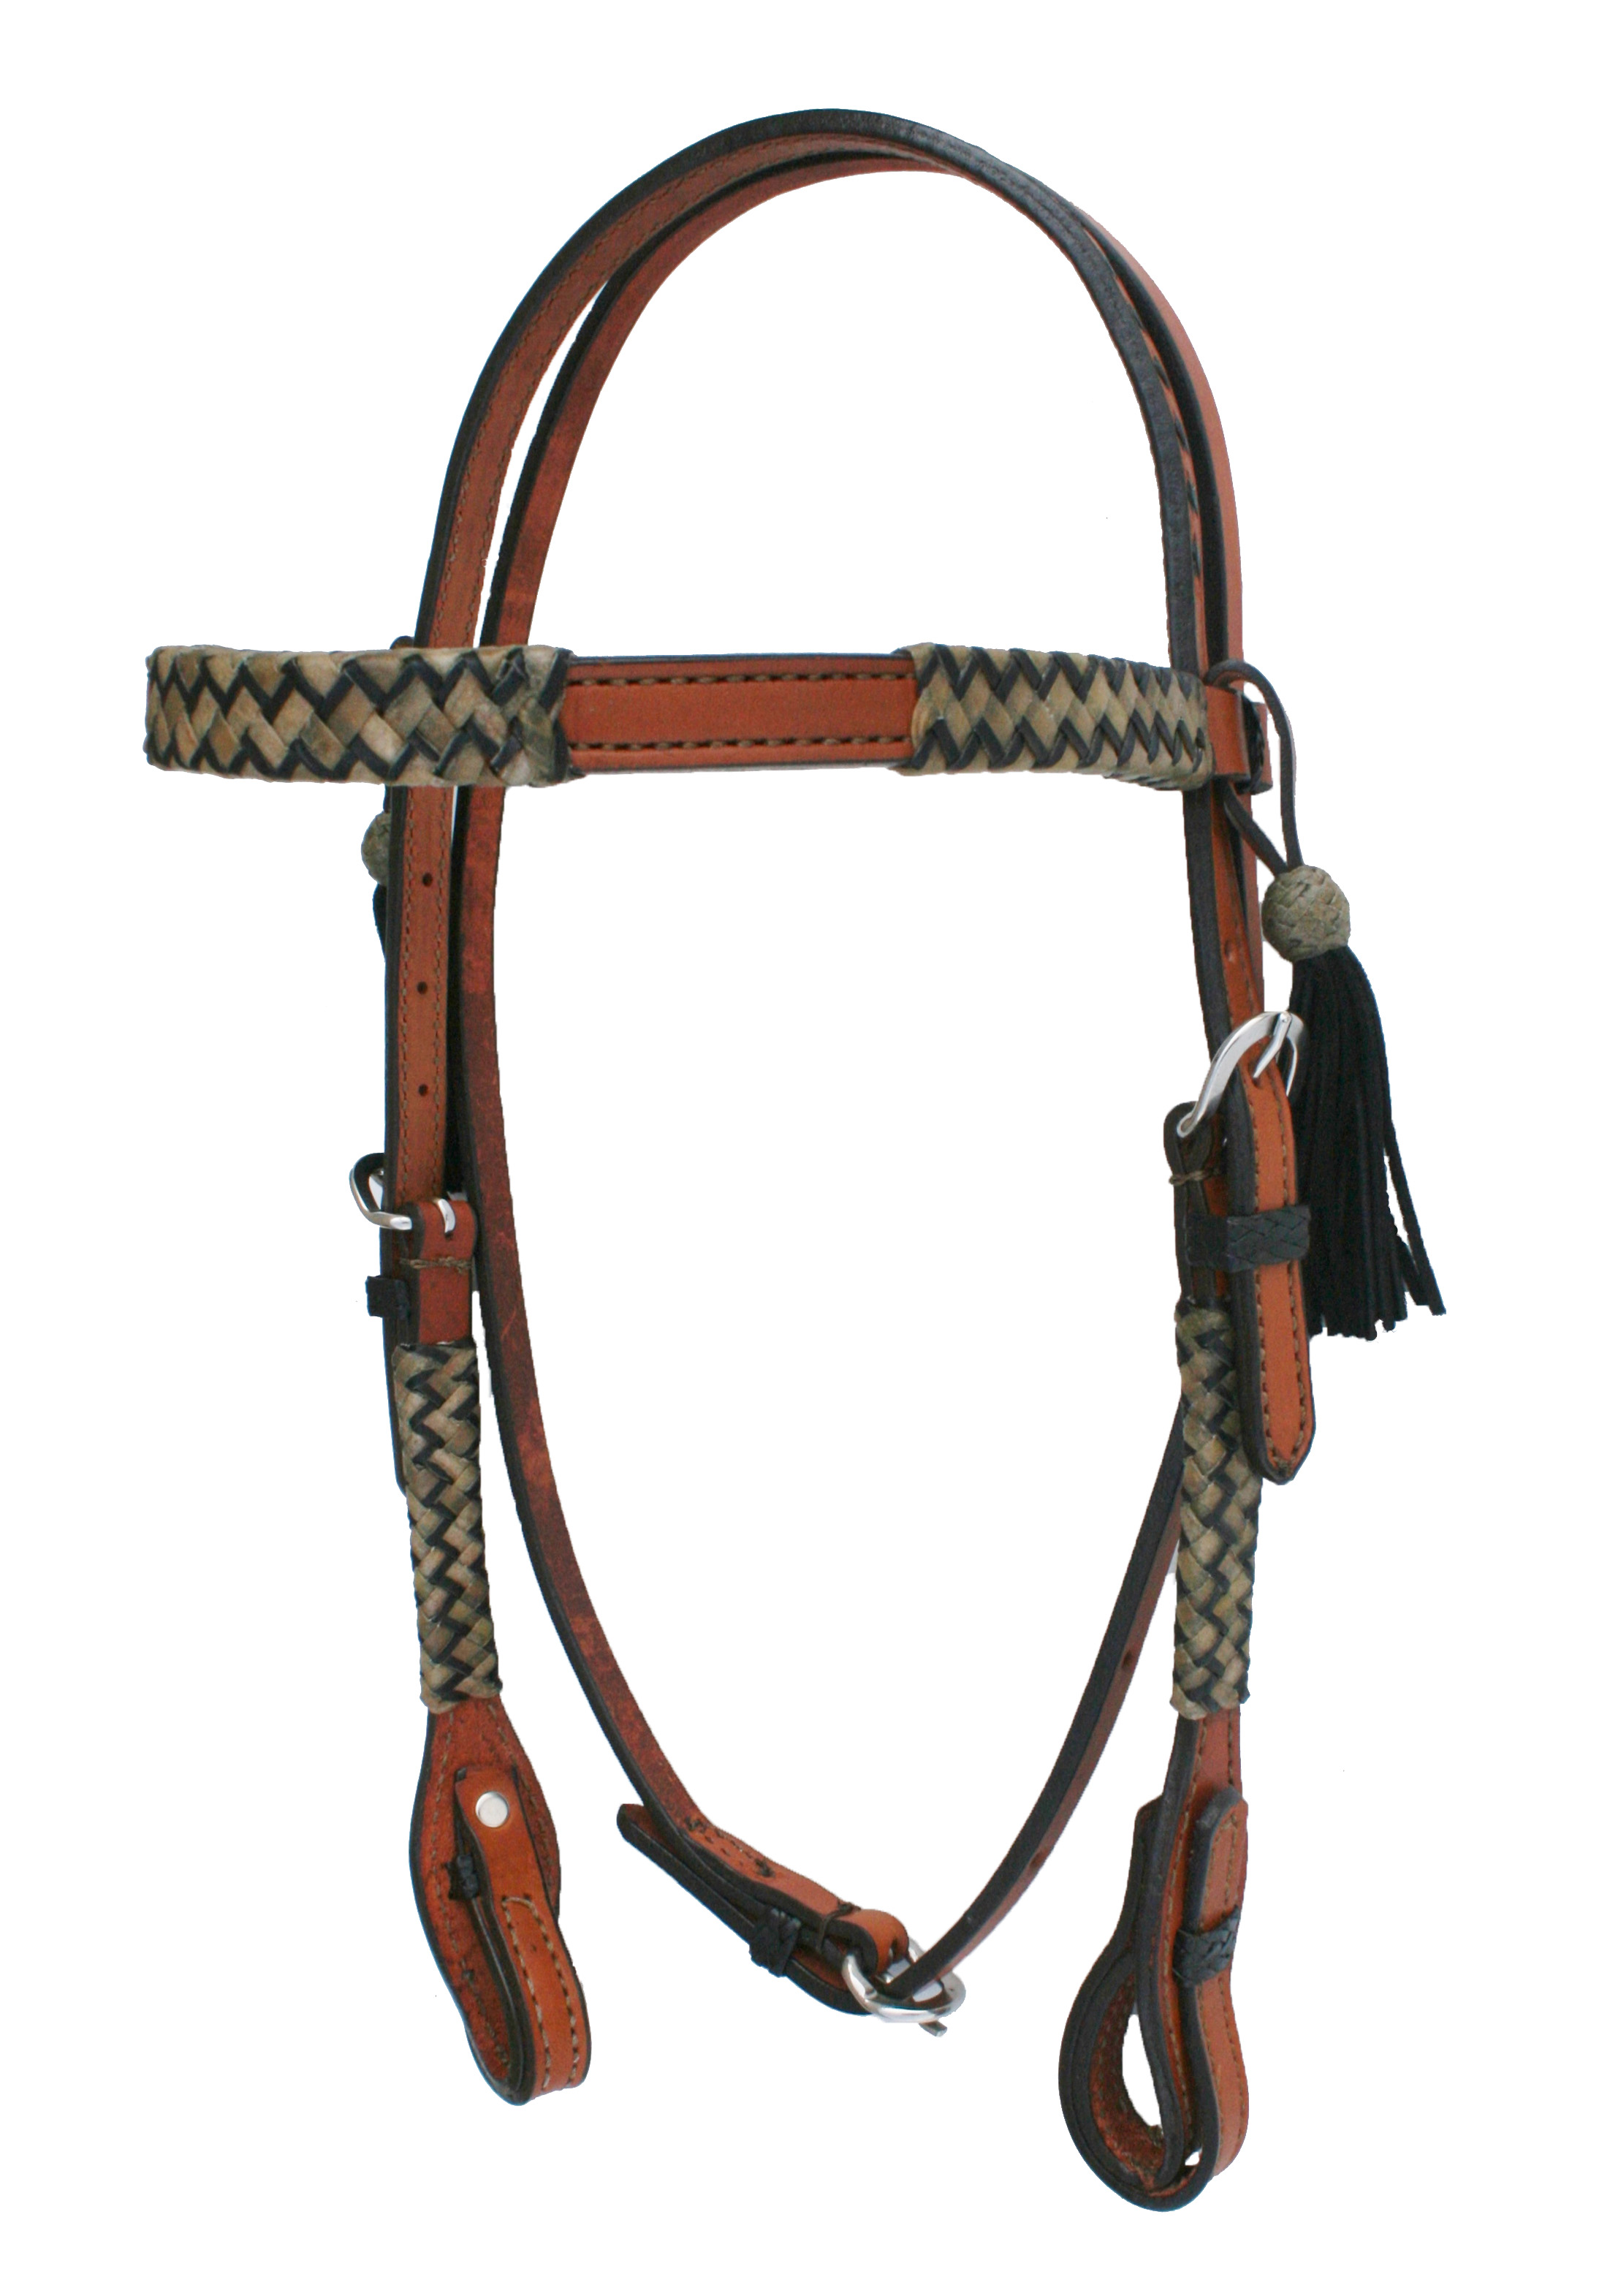 2015-CHE CHEVRON BLACK/NATURAL RAWHIDE BRAIDED HEADSTALL